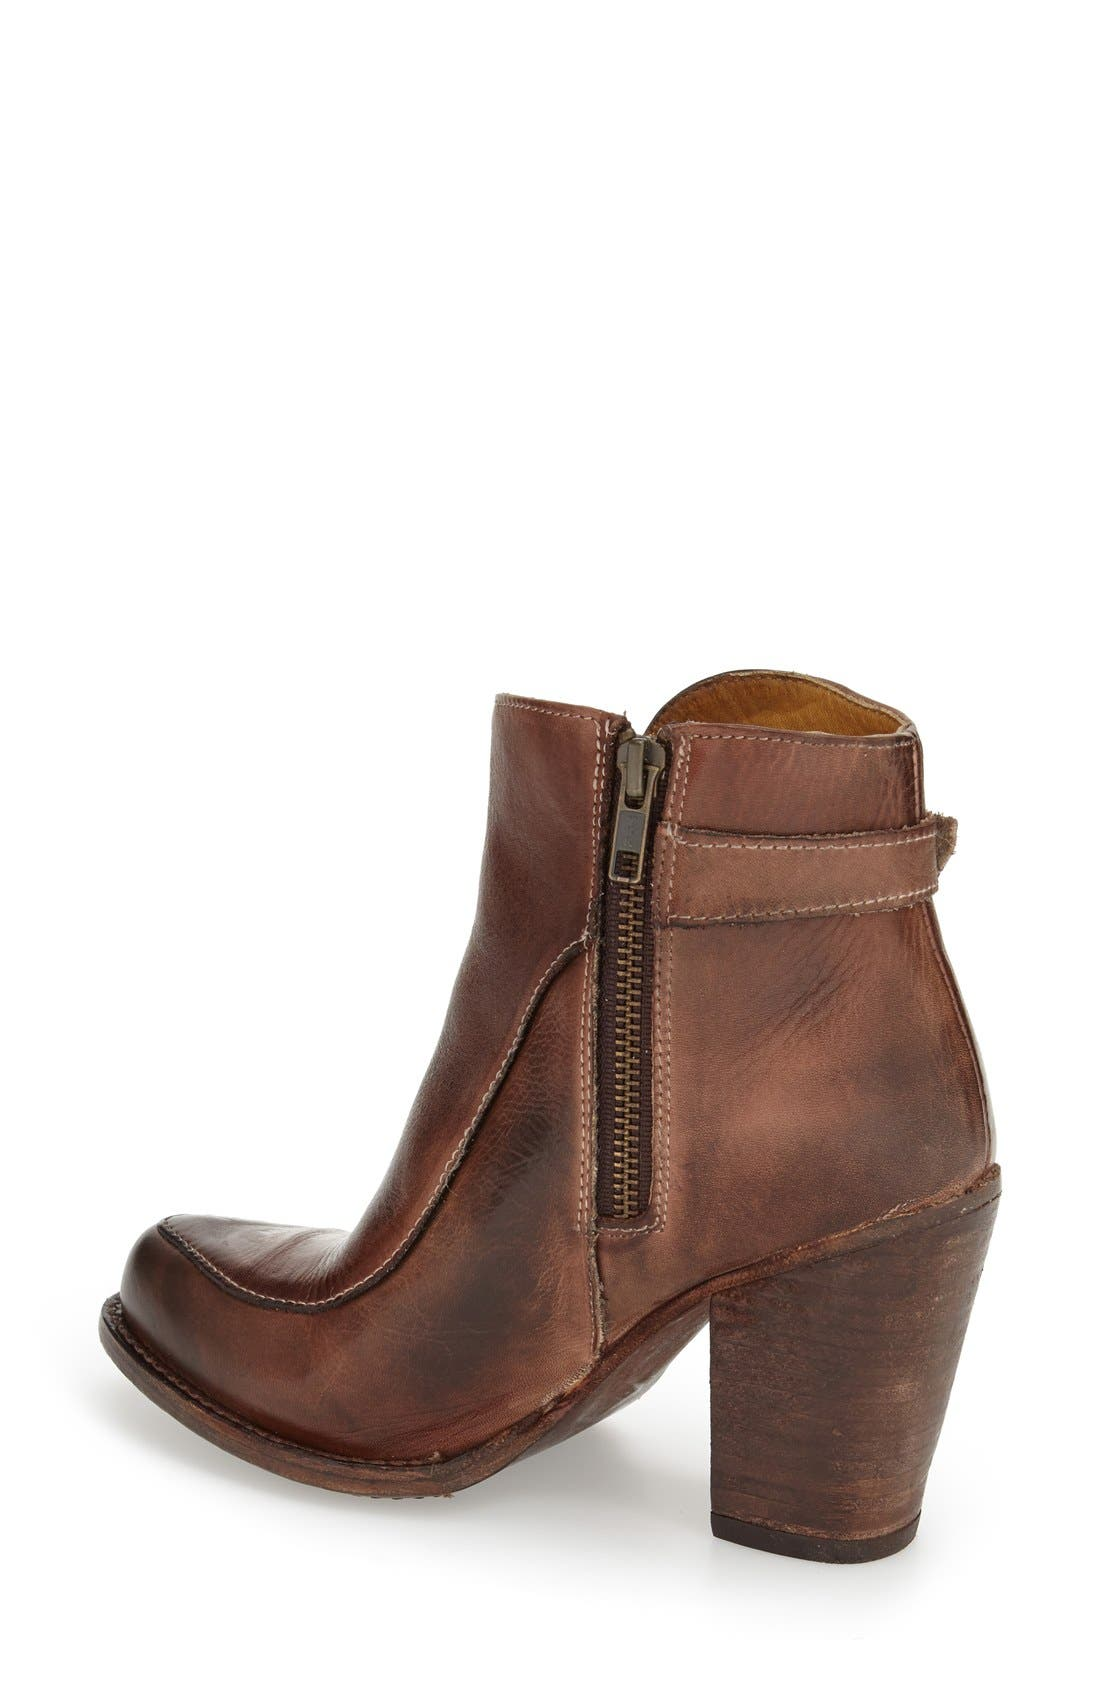 'Isla' Stacked Heel Boot,                             Alternate thumbnail 2, color,                             Teak Rustic Leather